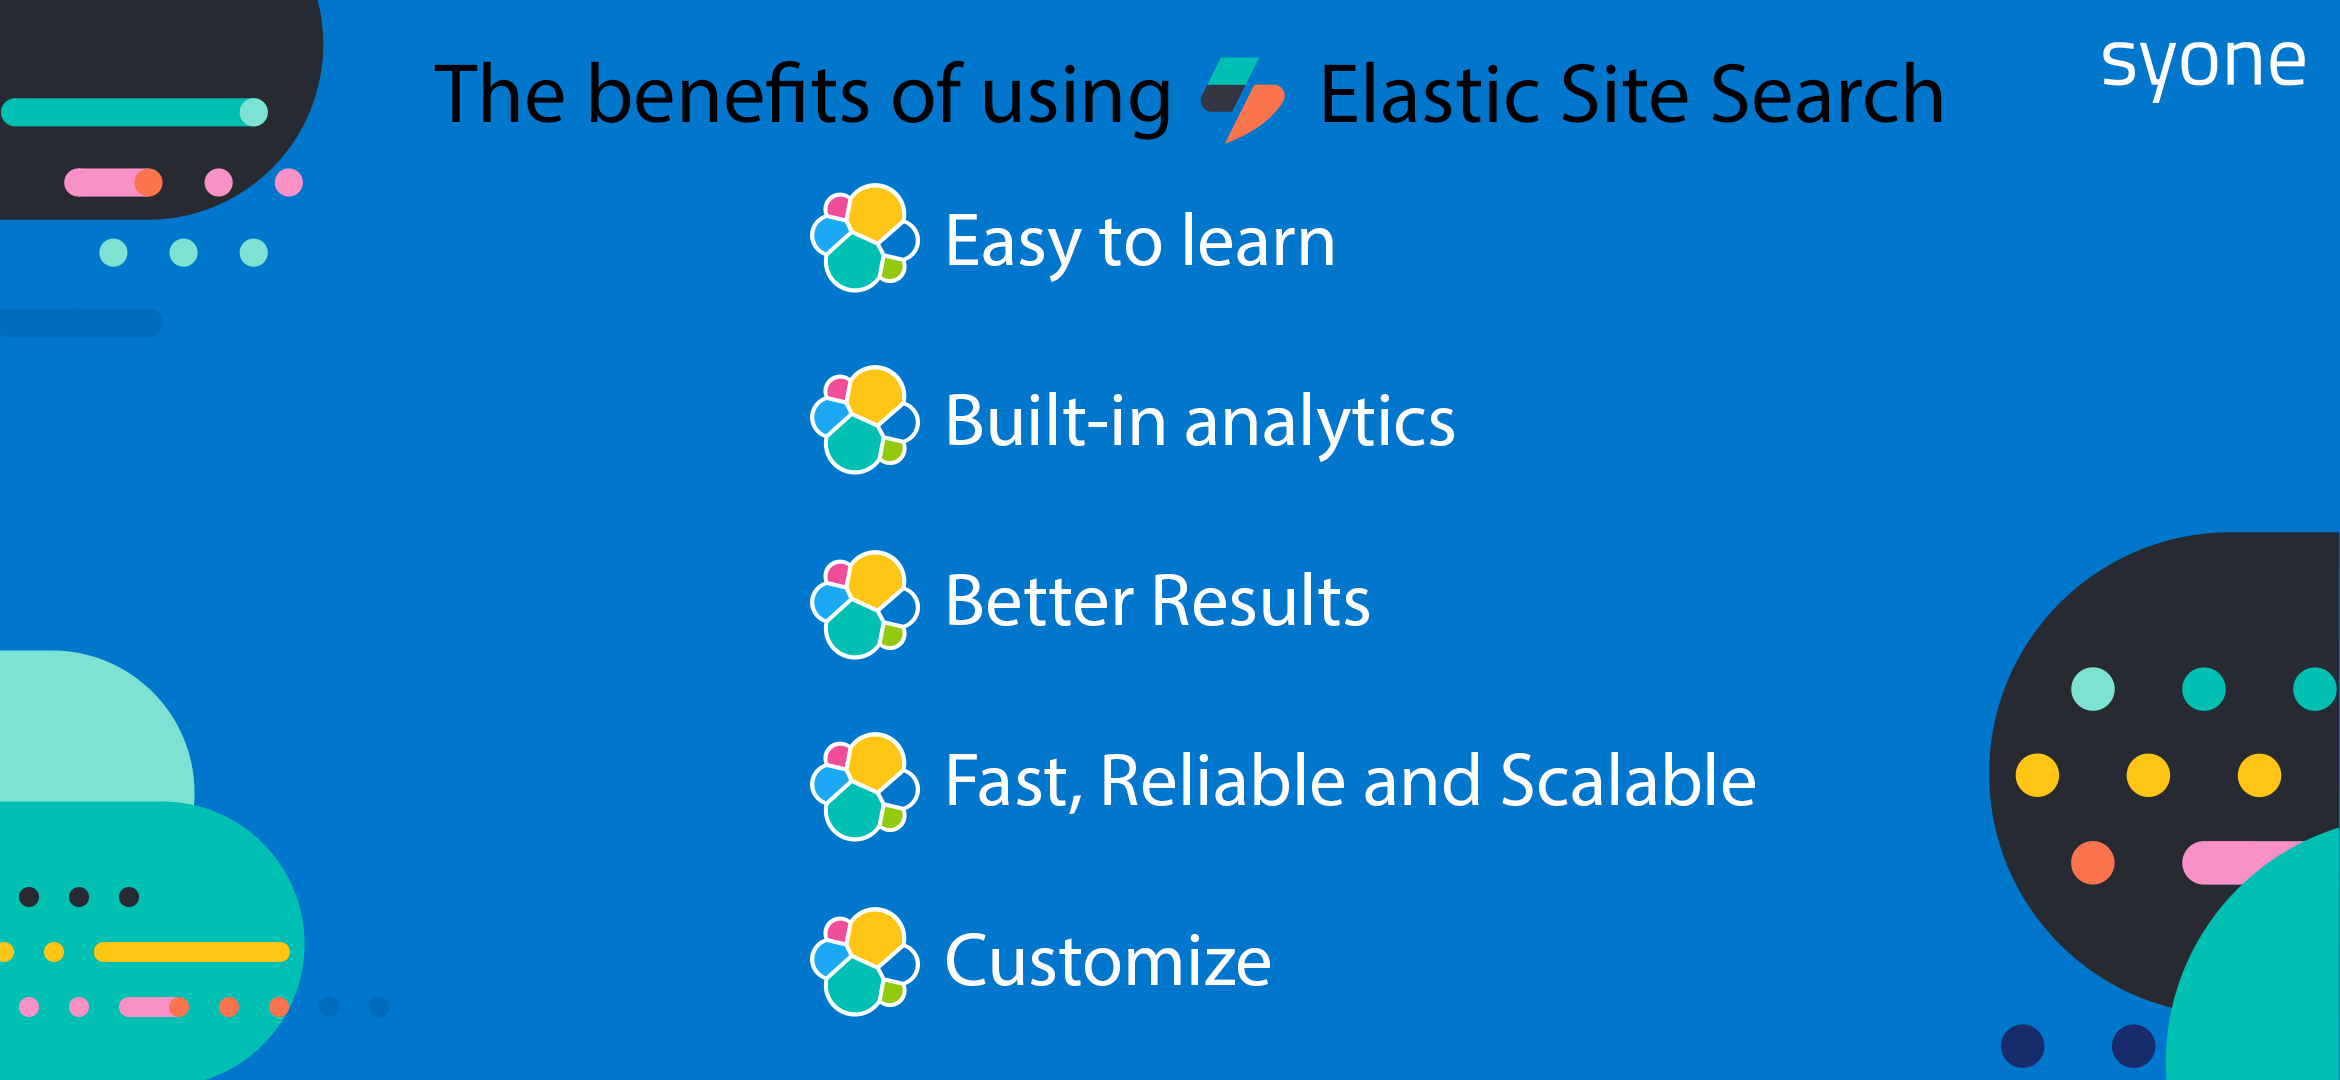 The Benefits of Elastic Site Search